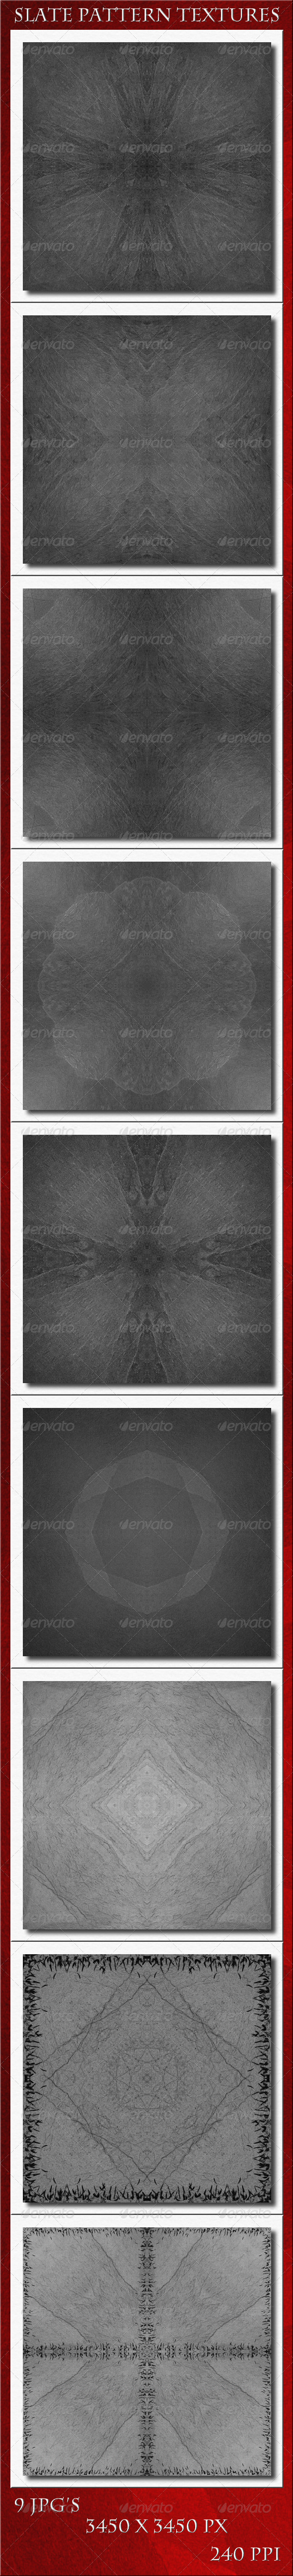 GraphicRiver Slate Pattern Textures 5682952